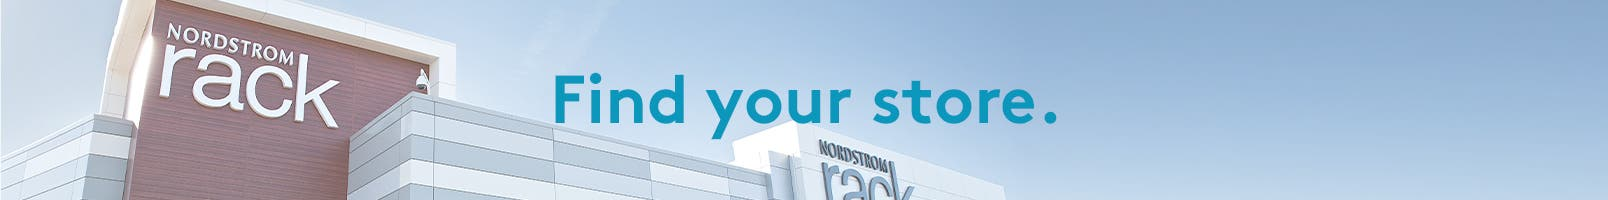 Find your store. Image: Nordstrom Rack store.